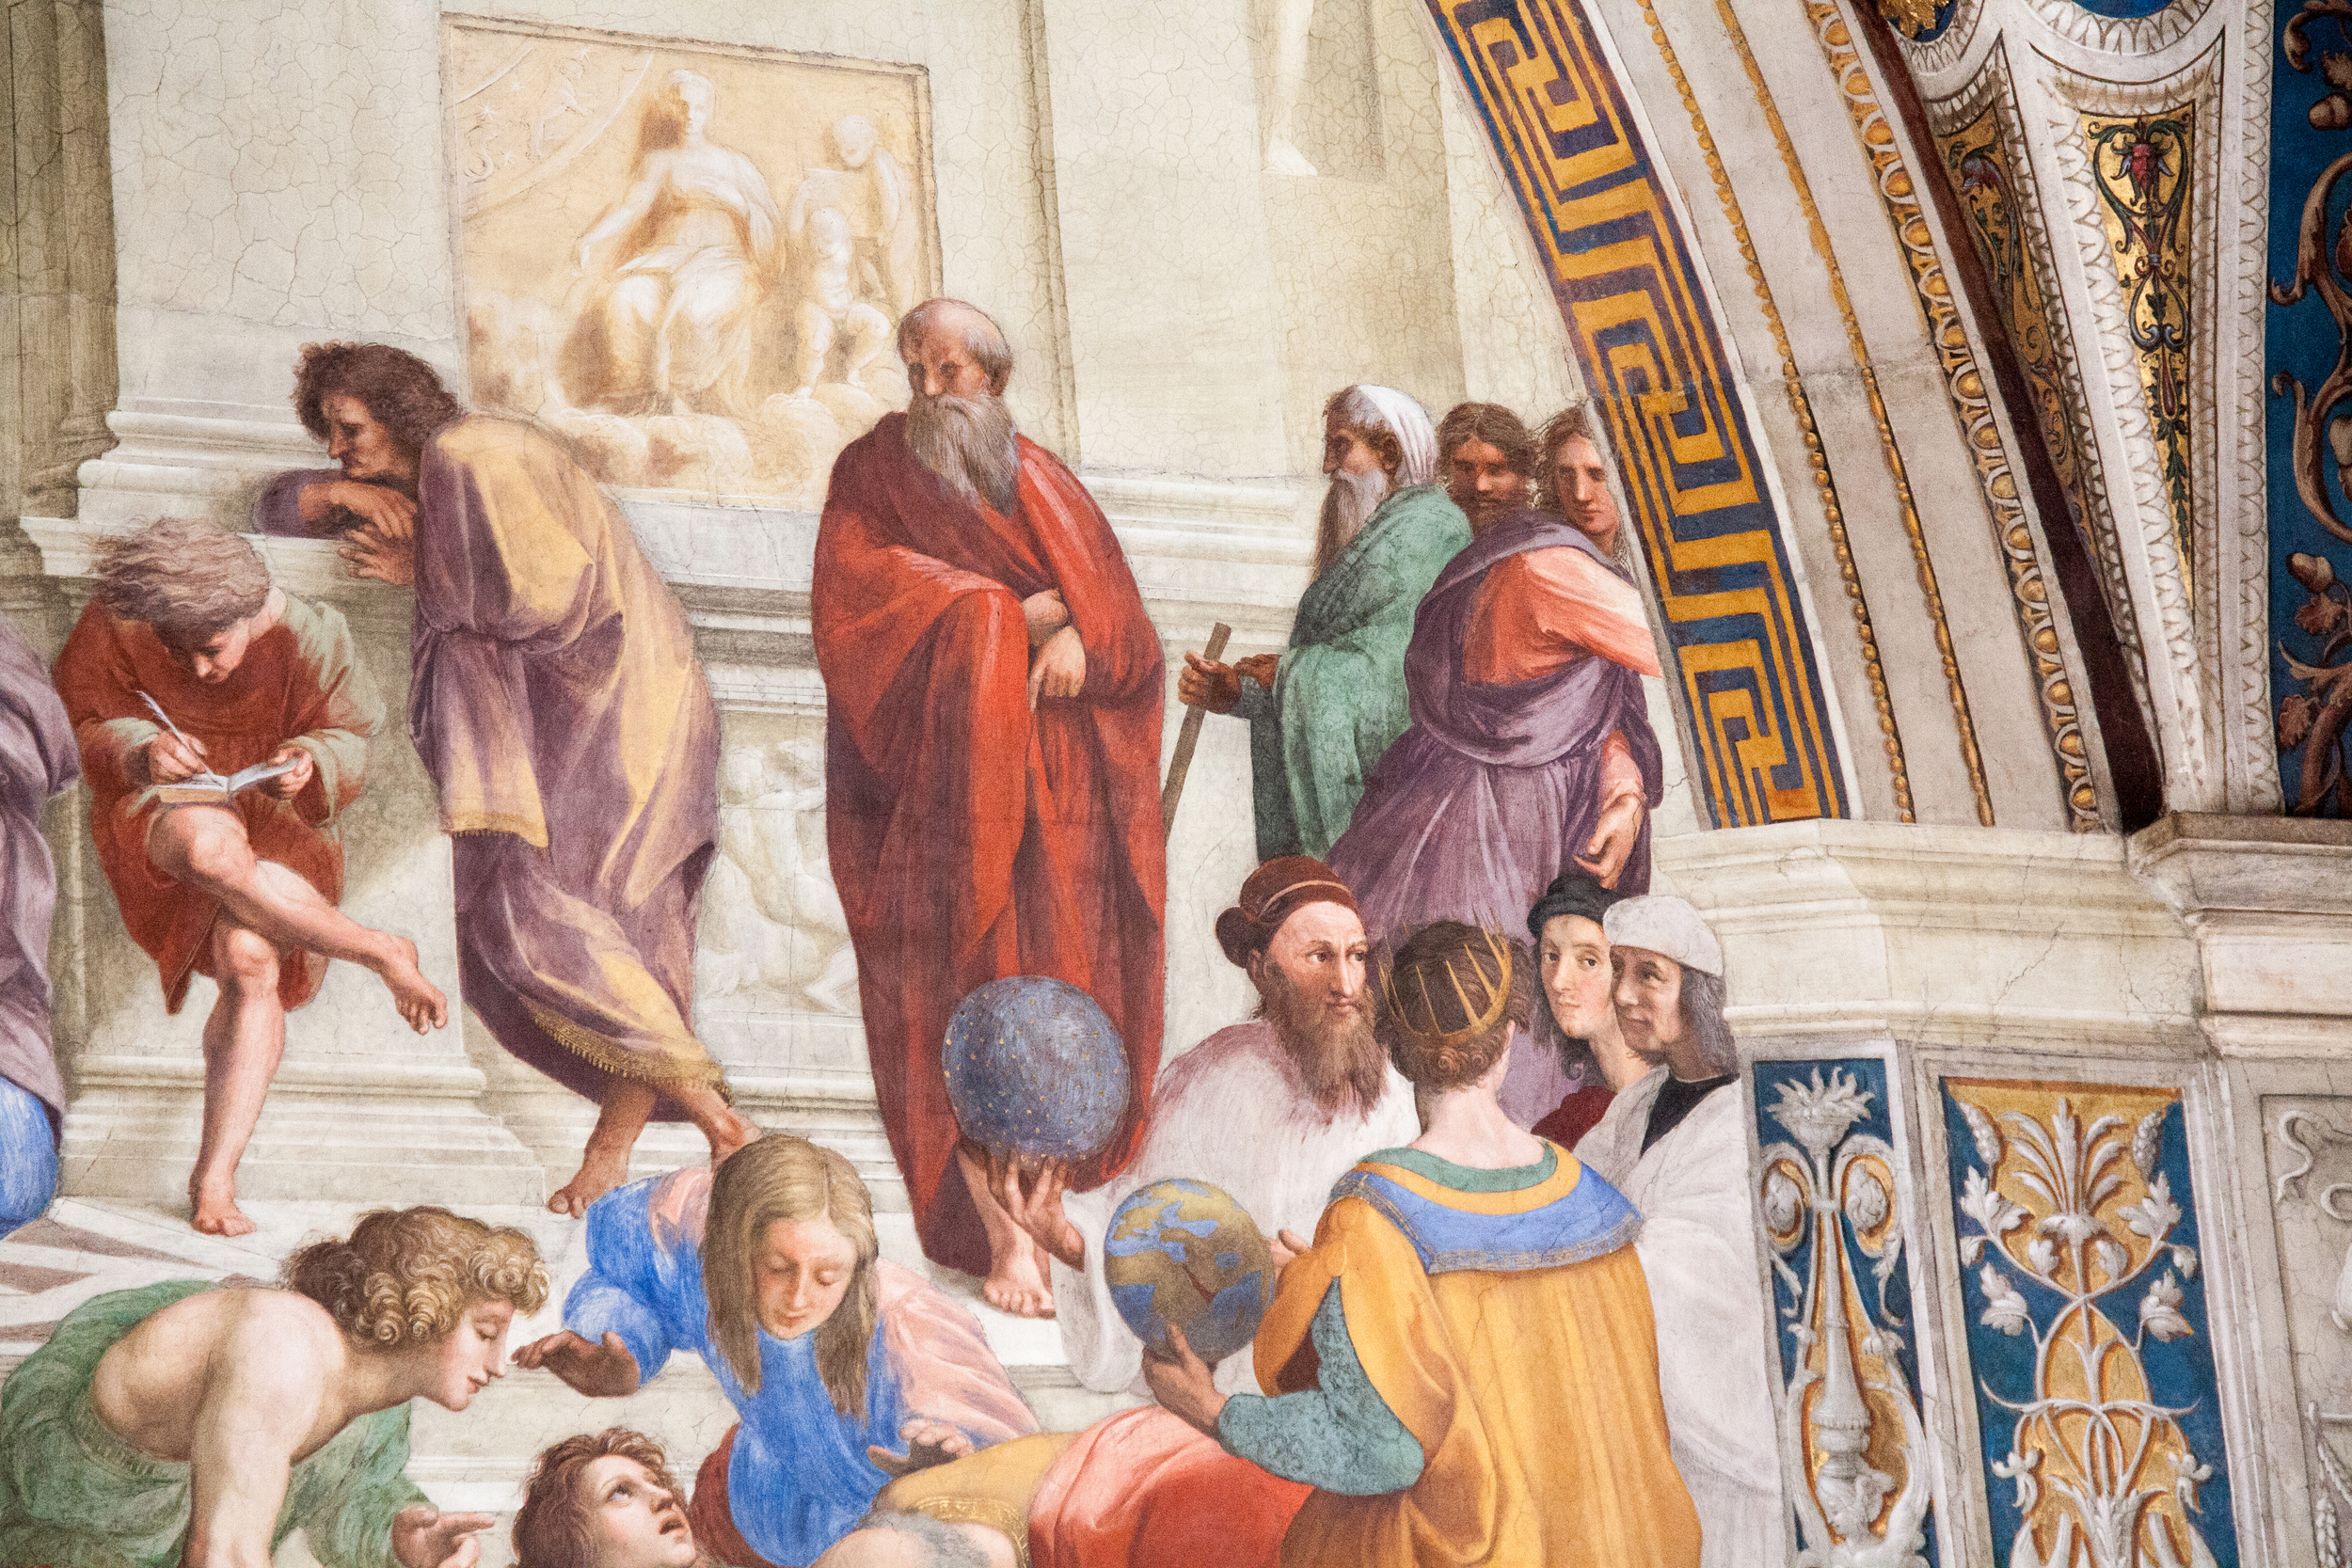 Raphael's self-portrait in  The School of Athens  (Raphael) is the second figure peeking out past the right, forefront column, dressed in red with dark hair